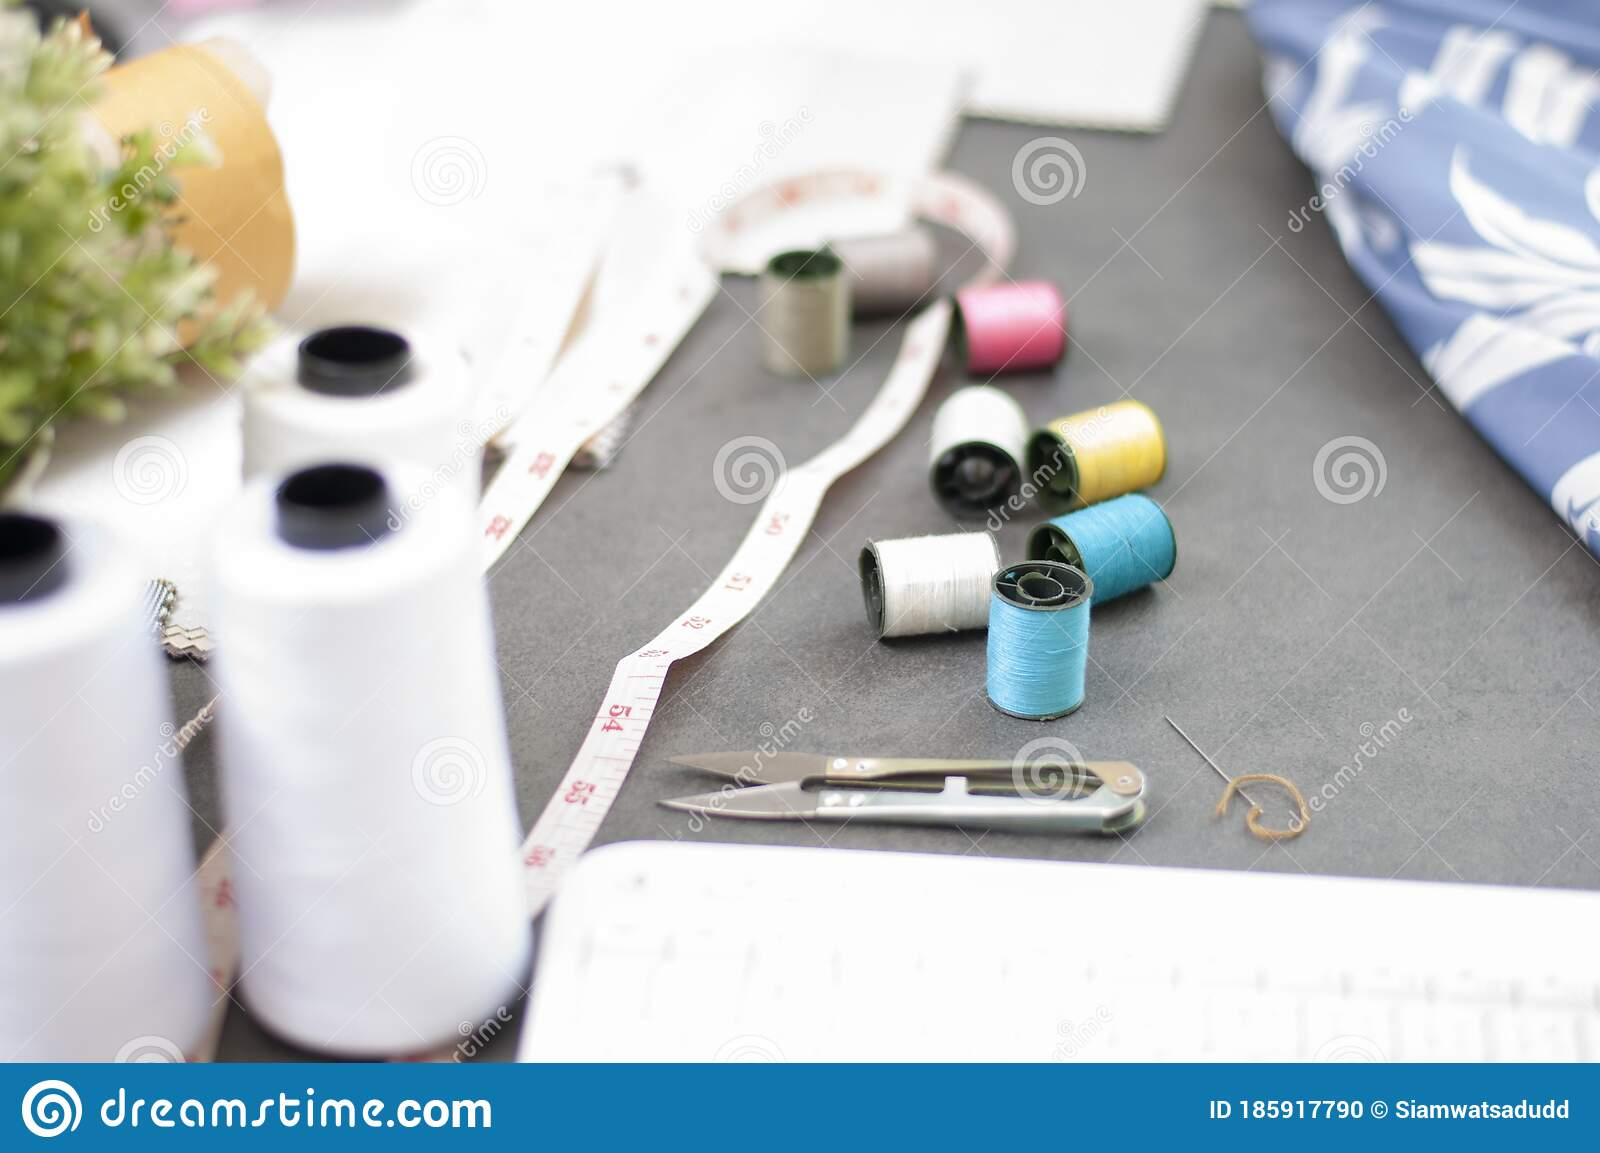 Fashion Design Working Studio Fashion Industry Set Of Tailor Accessories Stock Photo Image Of Adult Creative 185917790